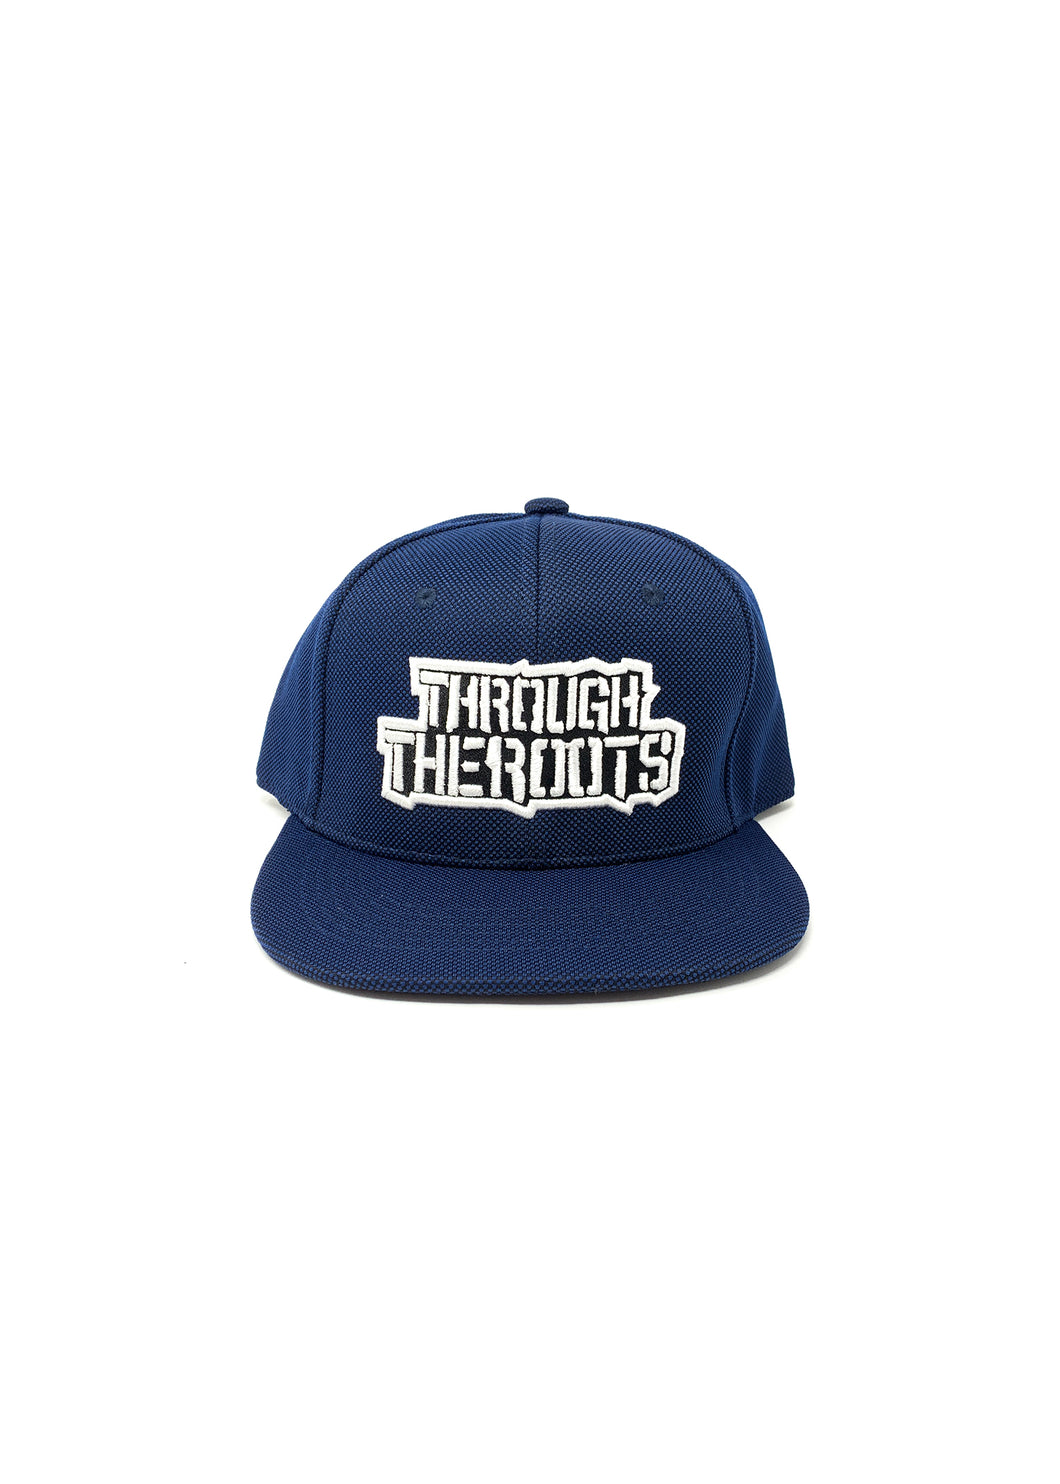 Navy With Black TTR Snapback